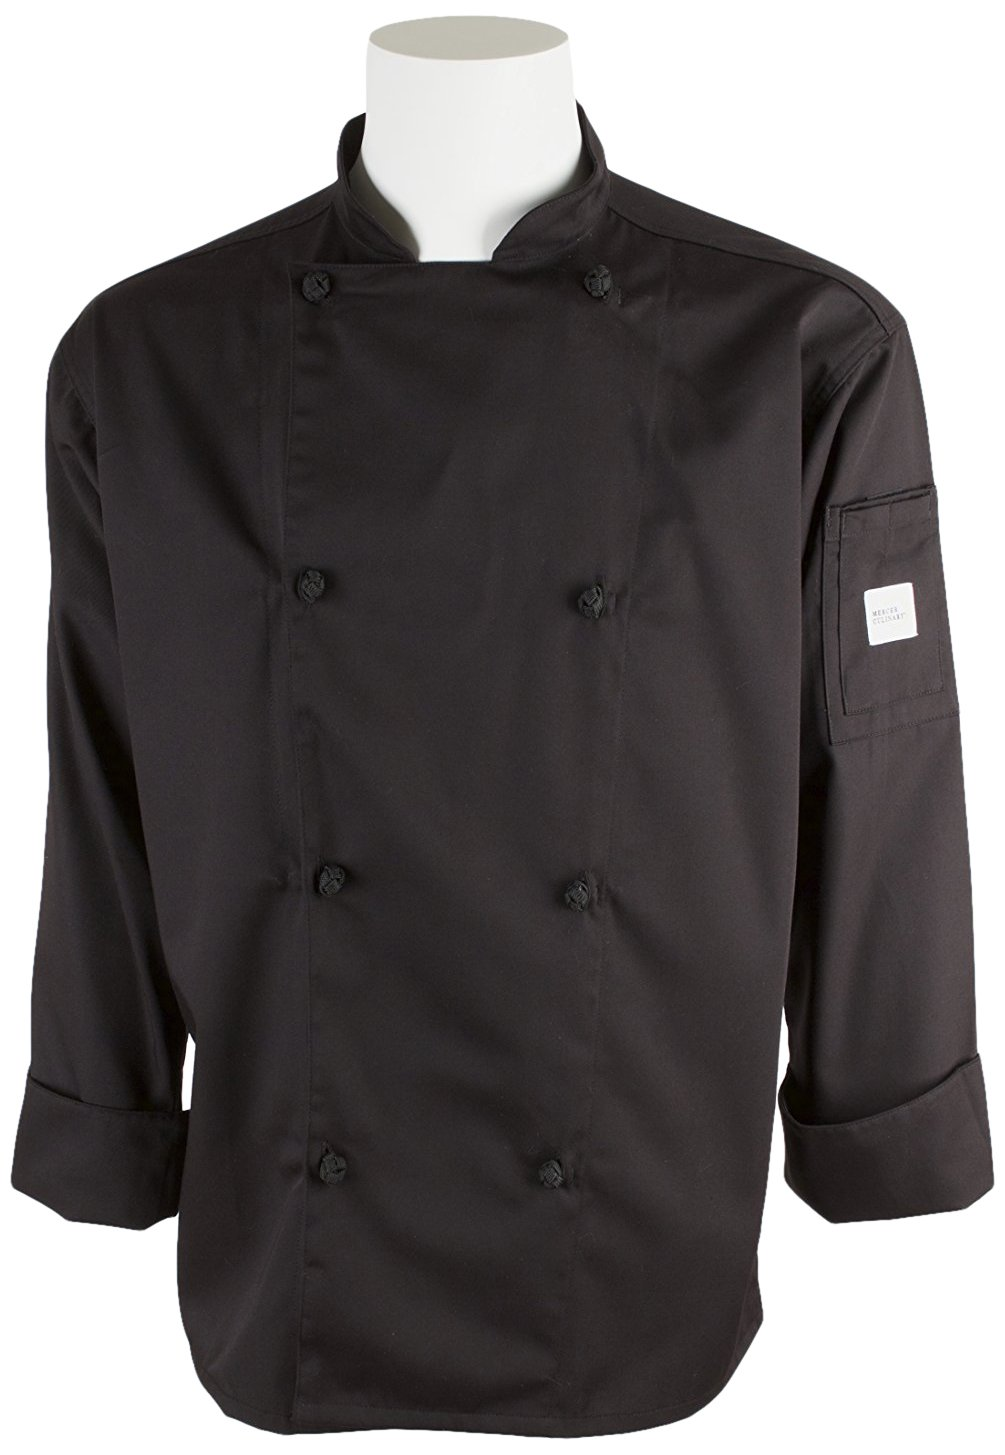 Mercer Culinary M61020BKL Genesis Men's Chef Jacket with Cloth Knot Buttons, Large, Black by Mercer Culinary